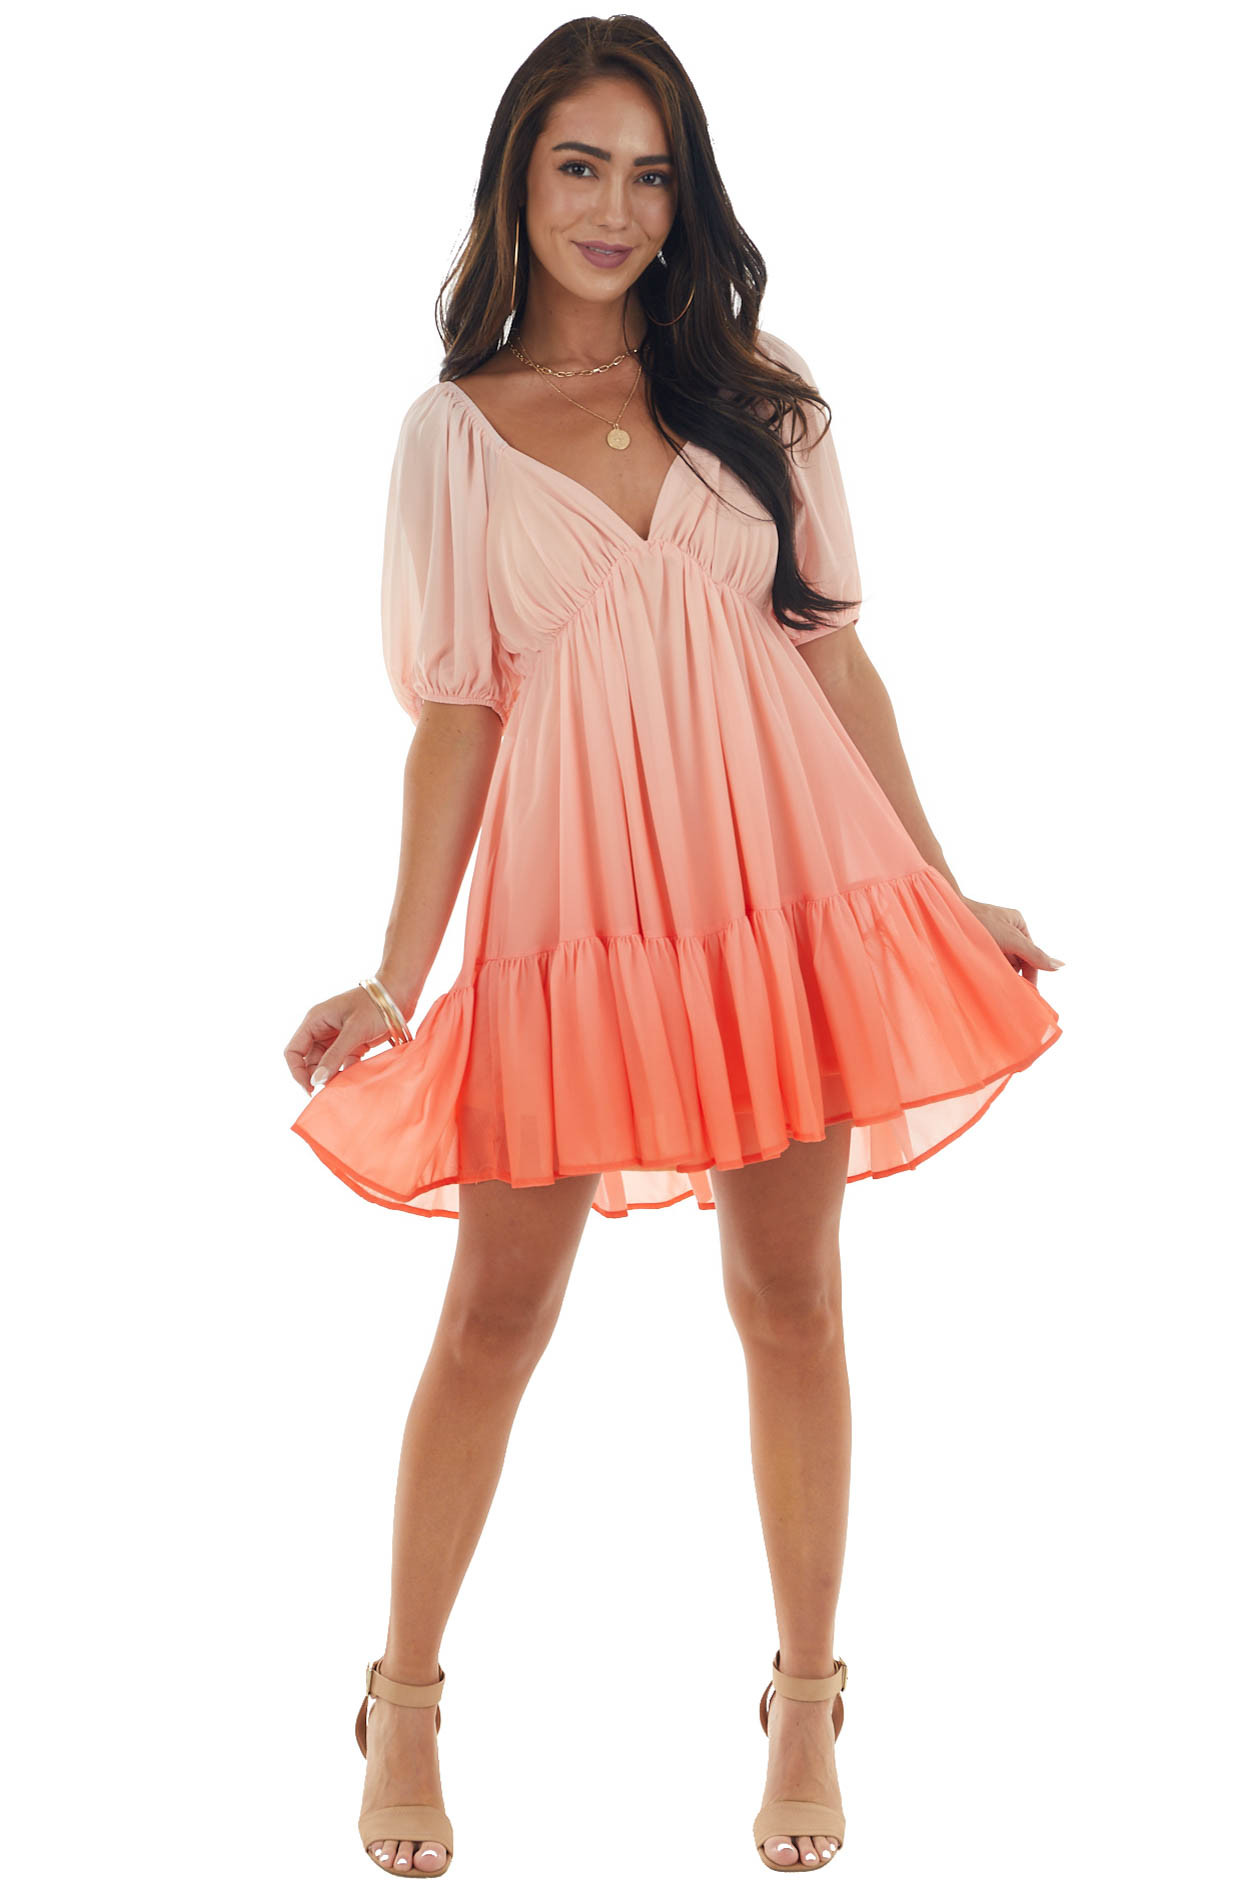 Coral Ombre Puff Sleeve Babydoll Short Dress